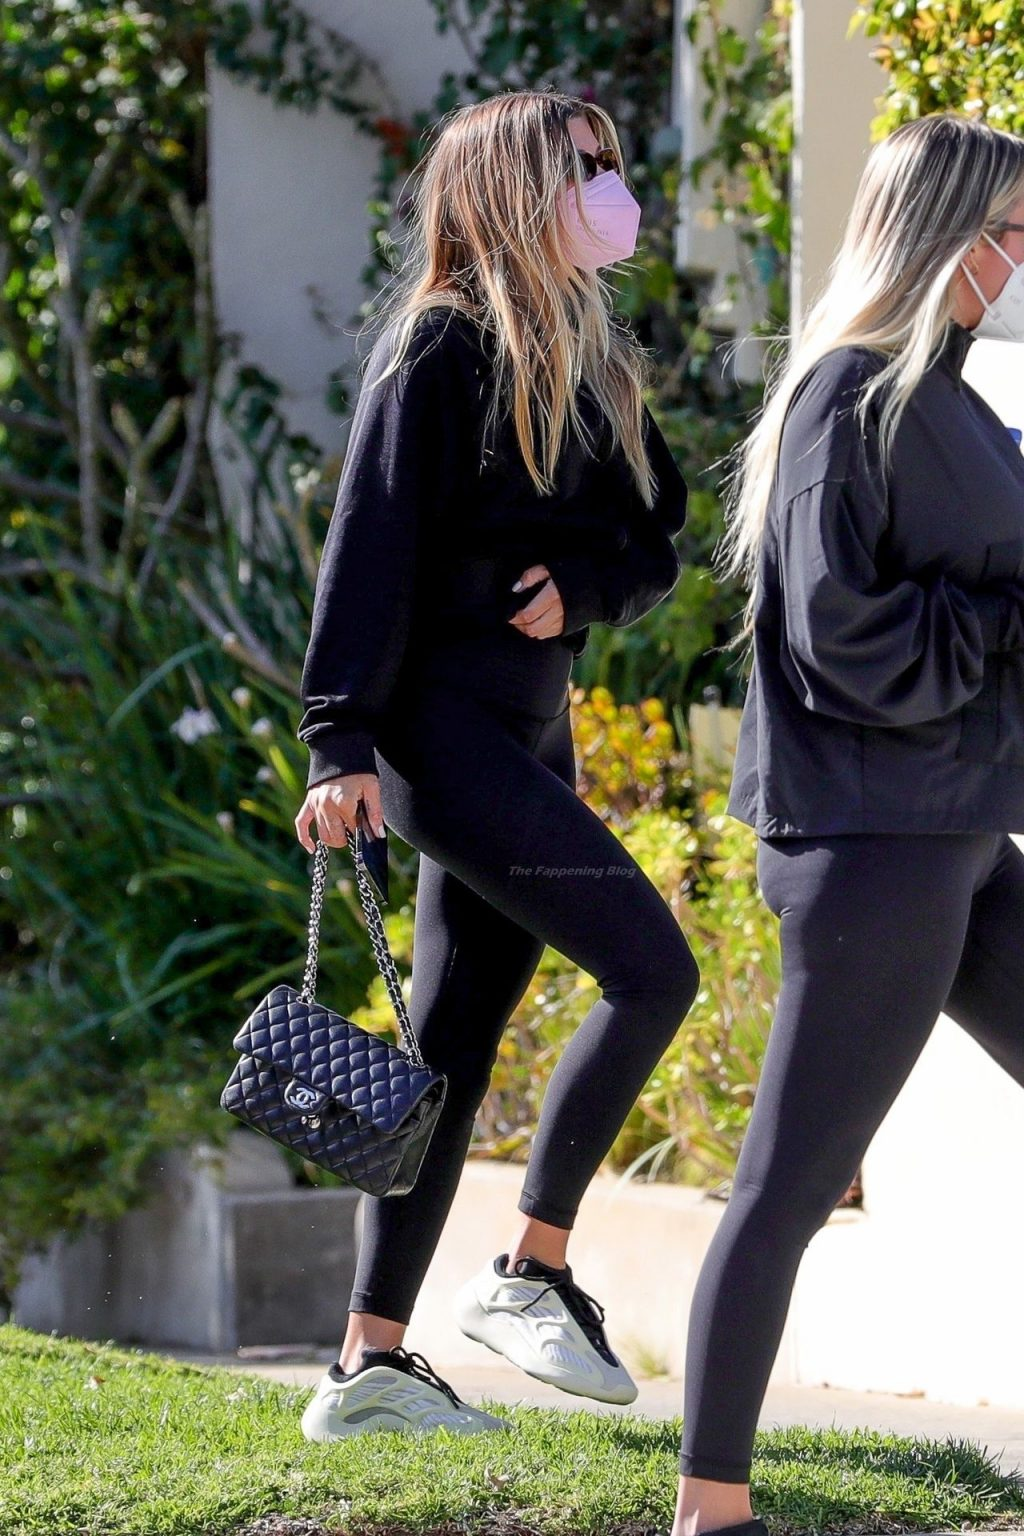 Sofia Richie Looks Great in All-Black (16 Photos)